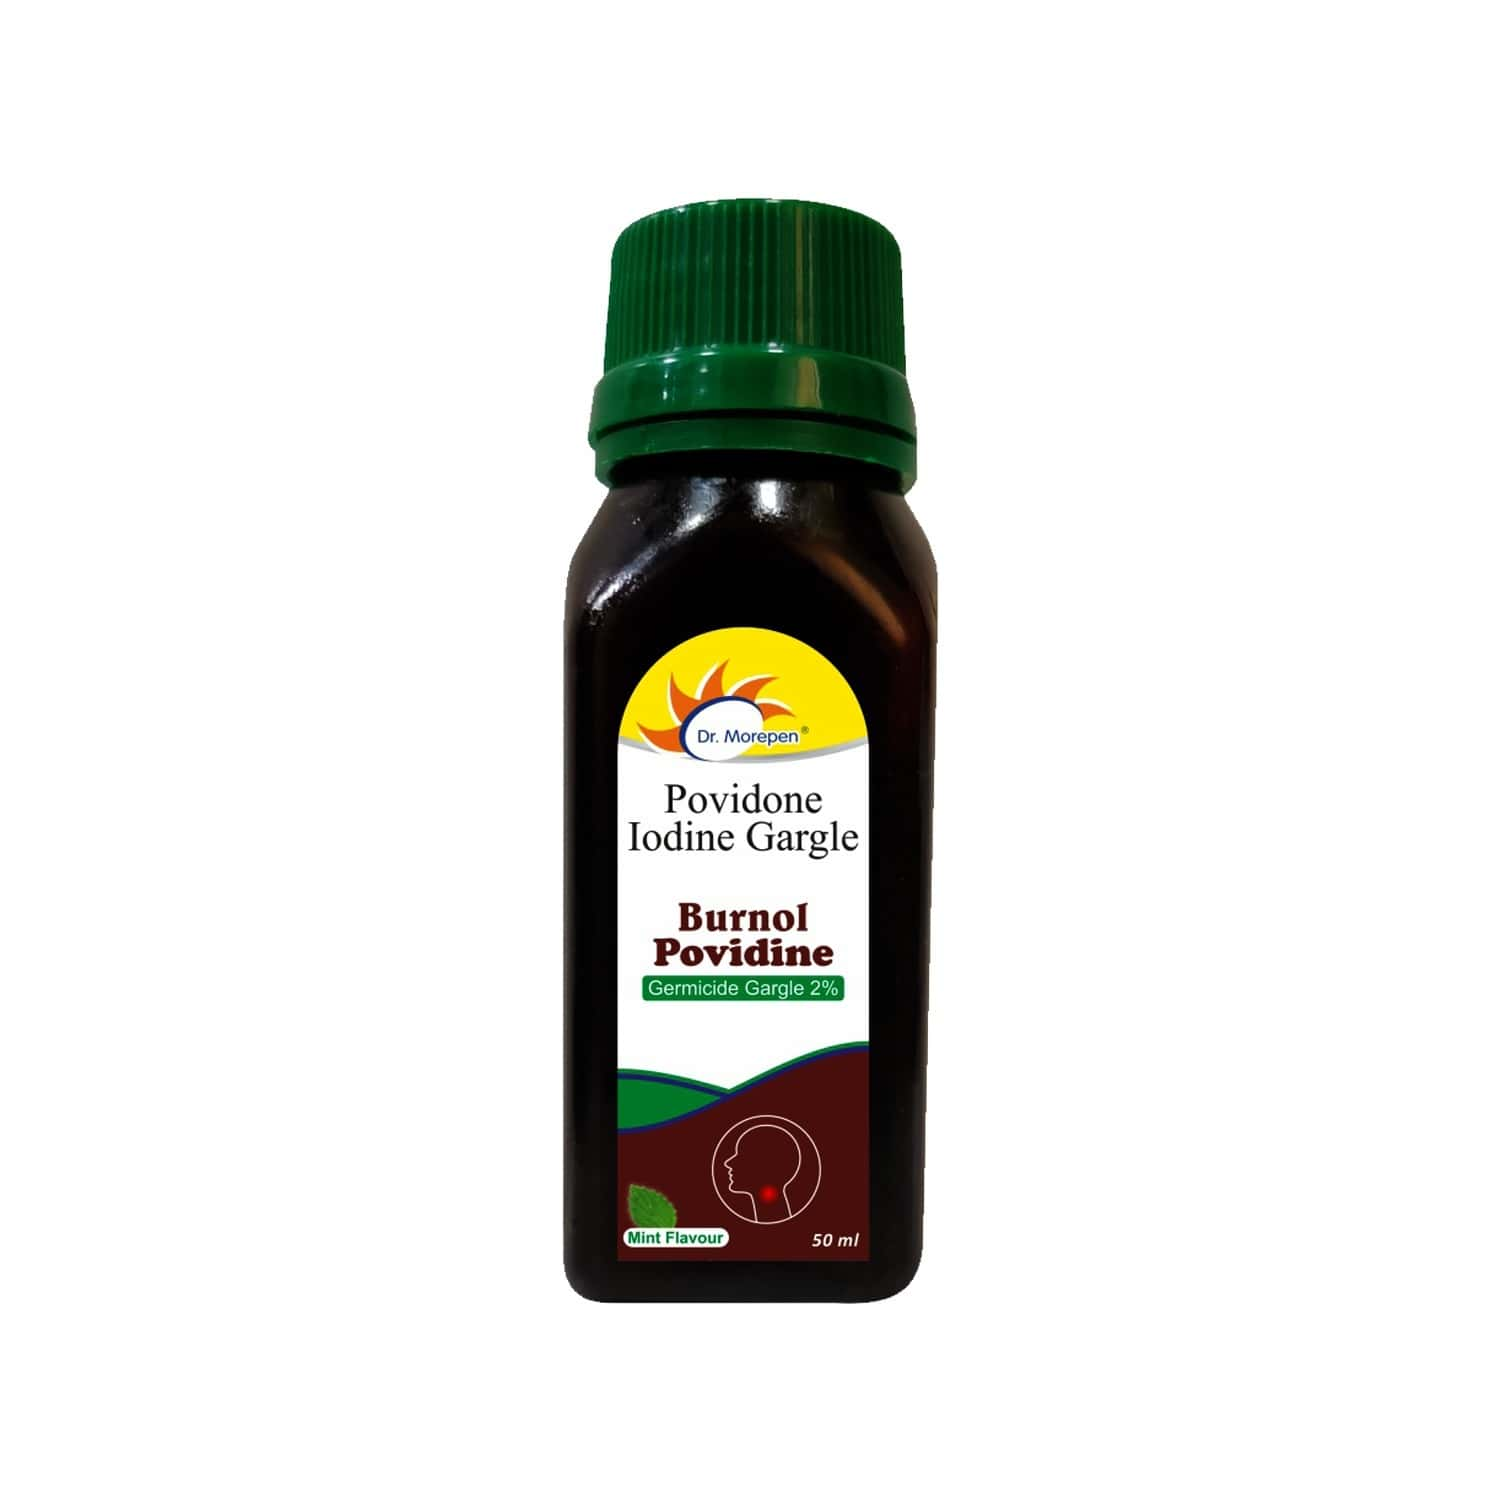 Dr. Morepen Providone Iodine Gargle With Mint Flavour - 50ml